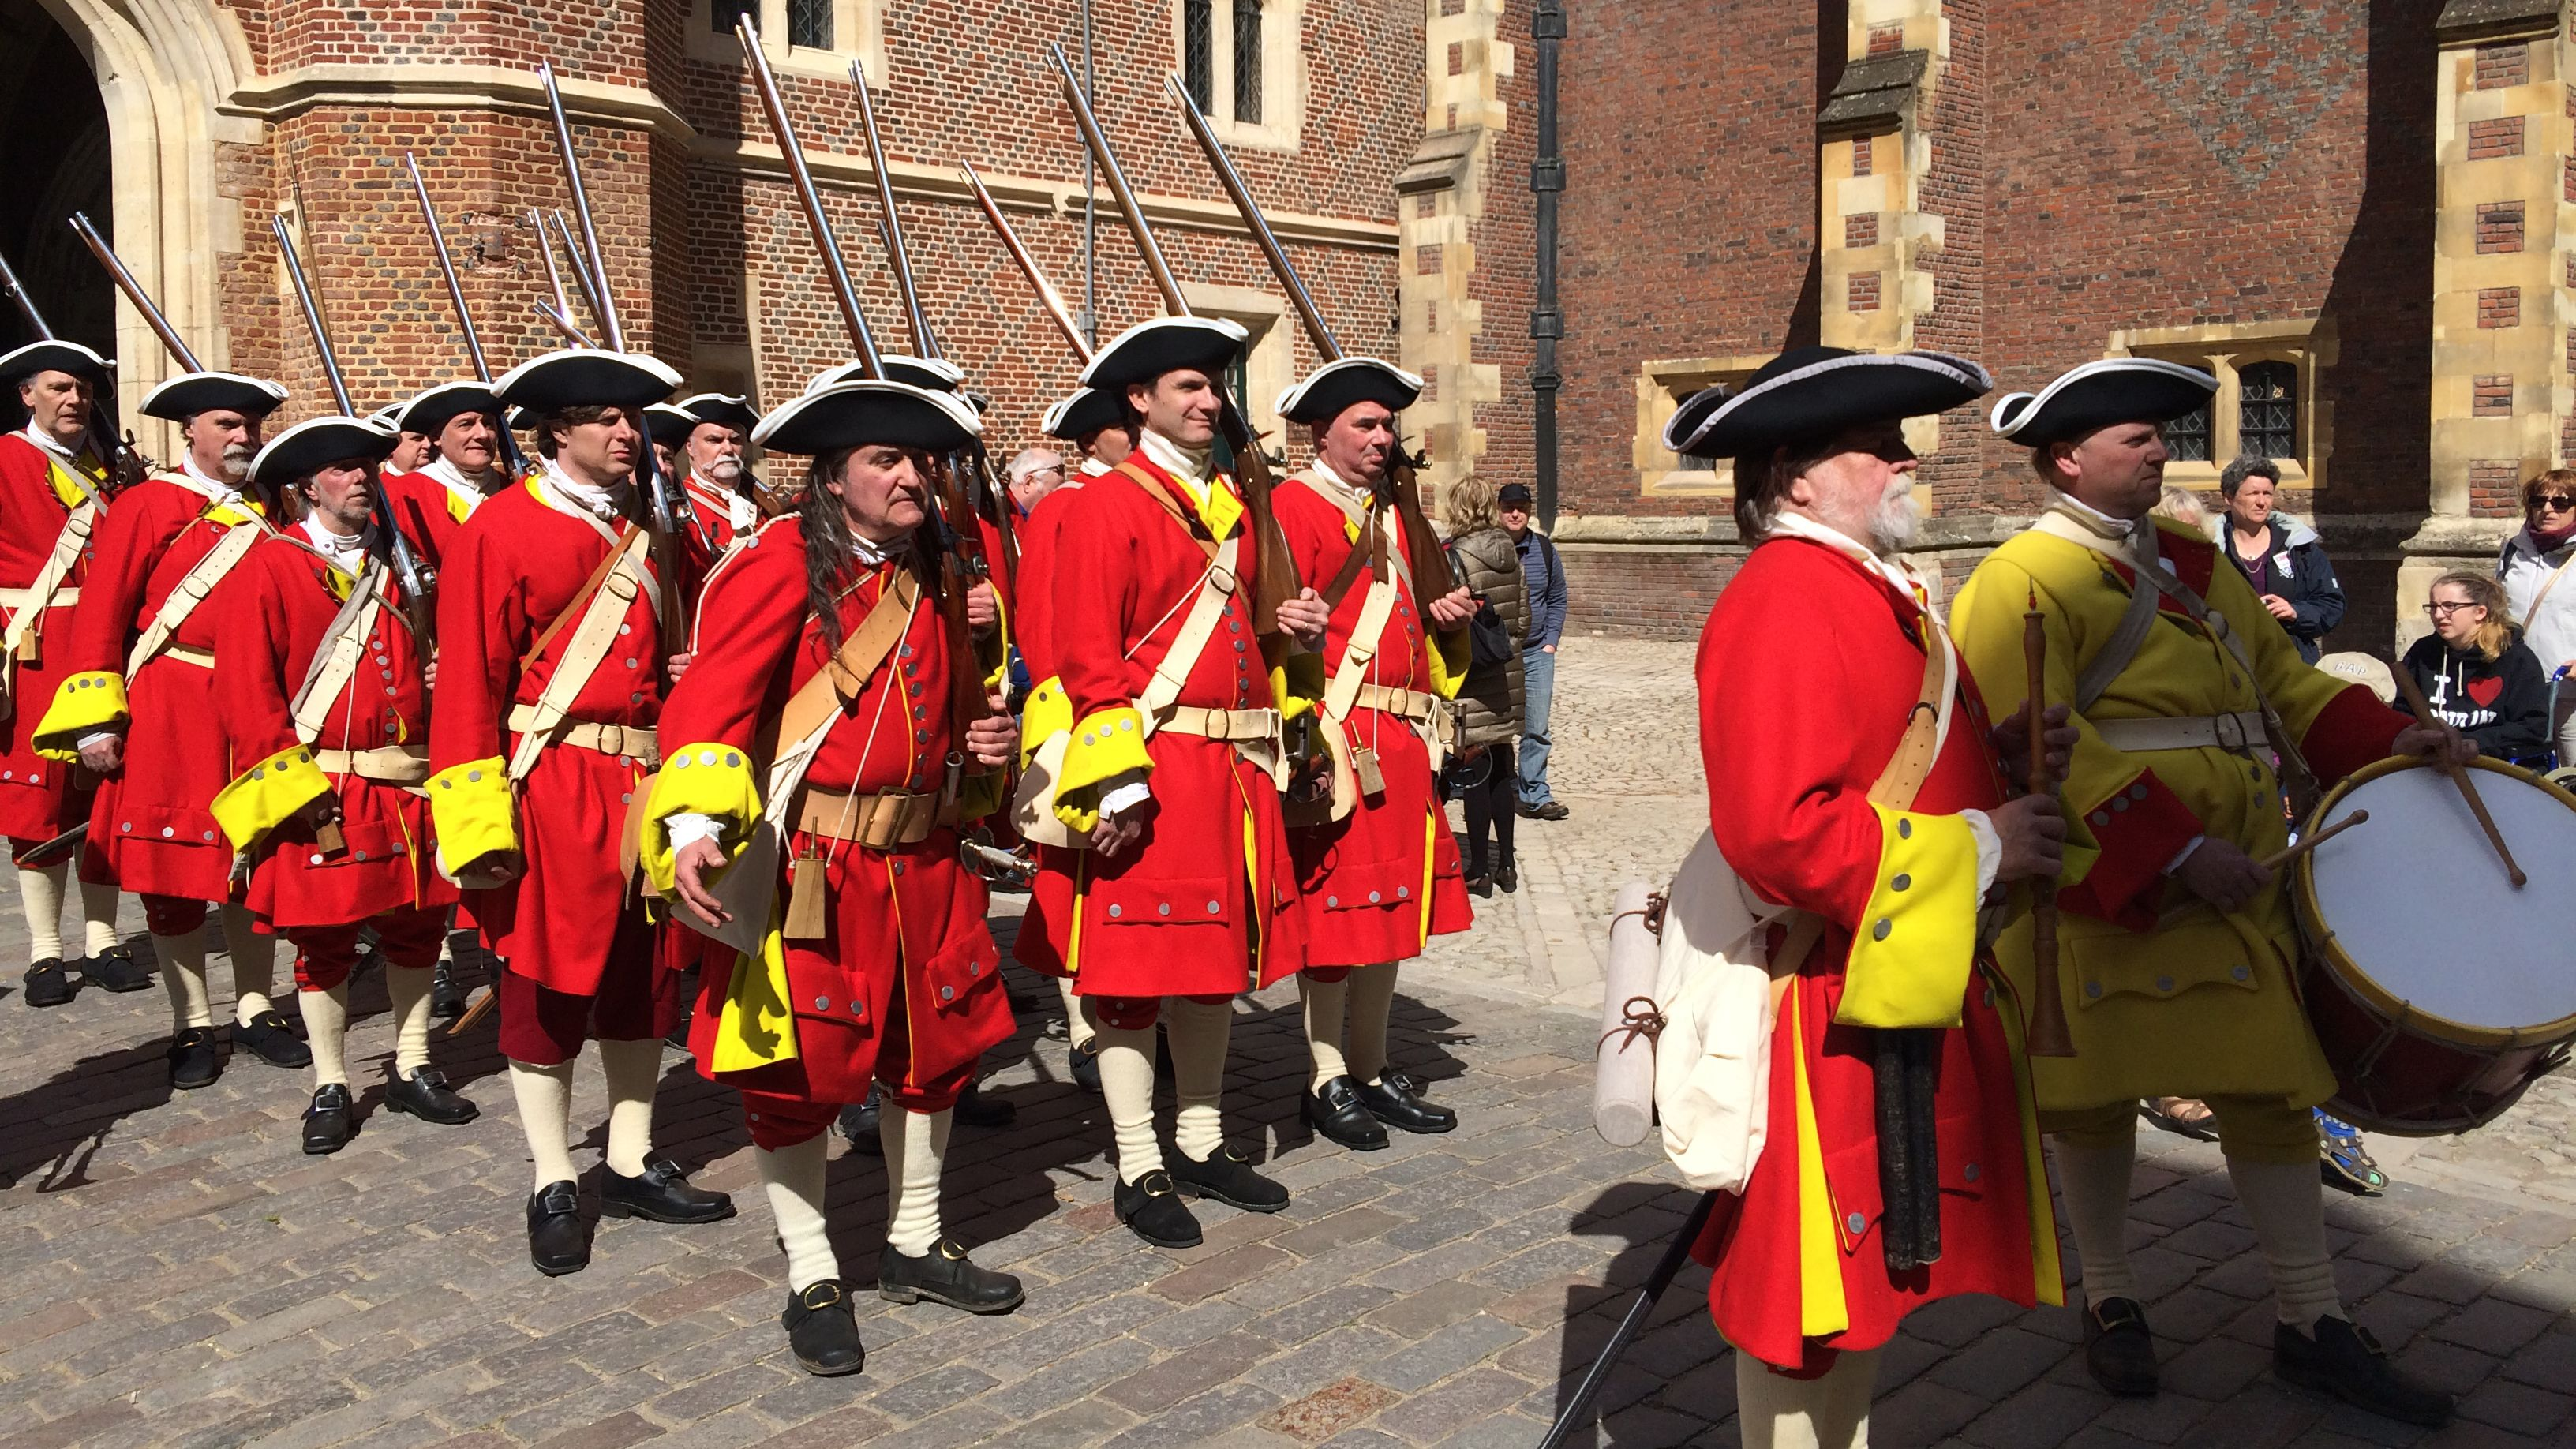 Englishmen reenactors dressed in red soldier uniforms on the street of London